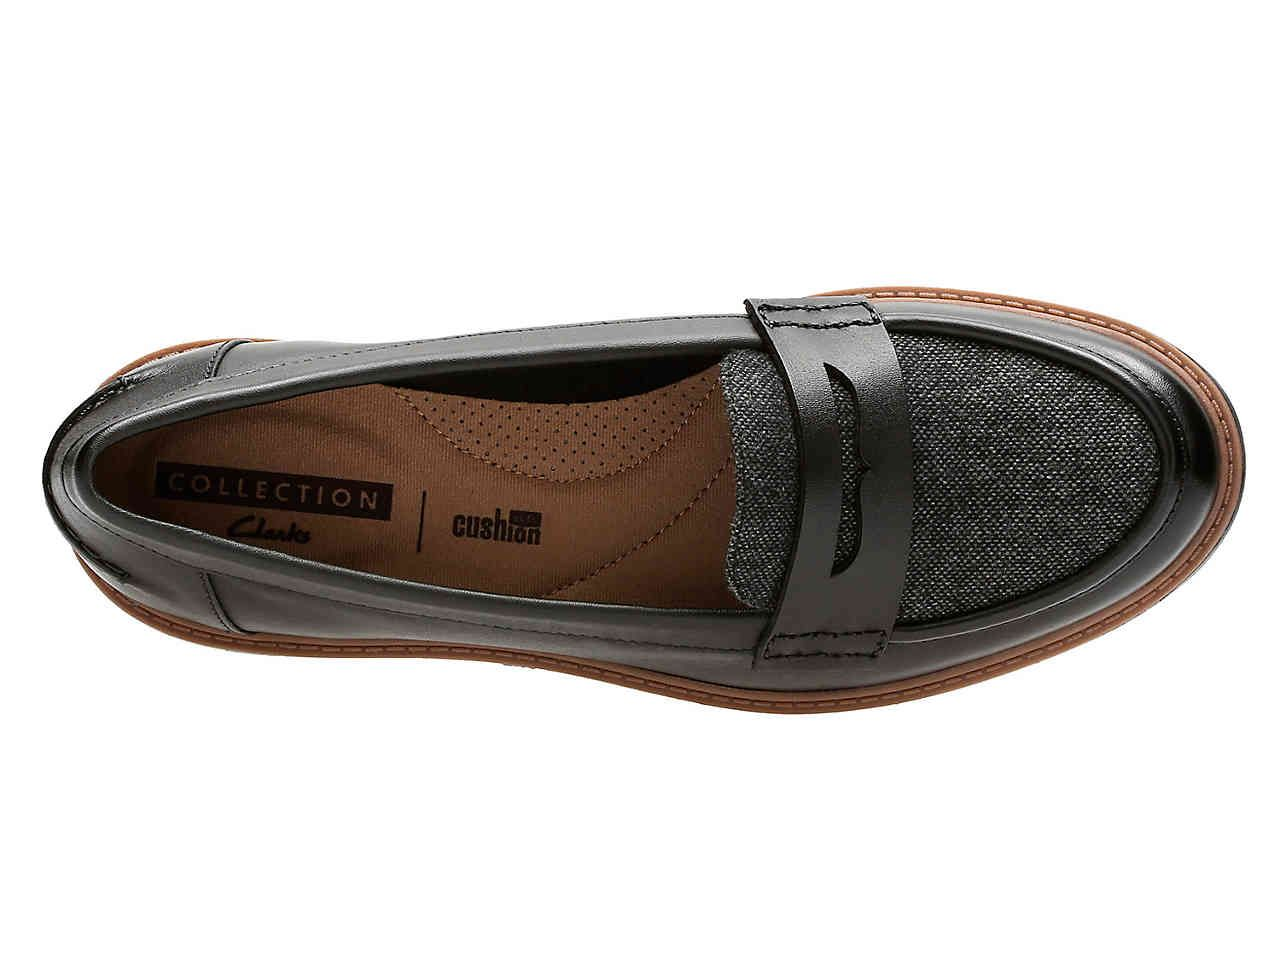 Clarks Eletta Raisie Women's ShoesDsw Loafer Plate Fashion Yfbyv7g6